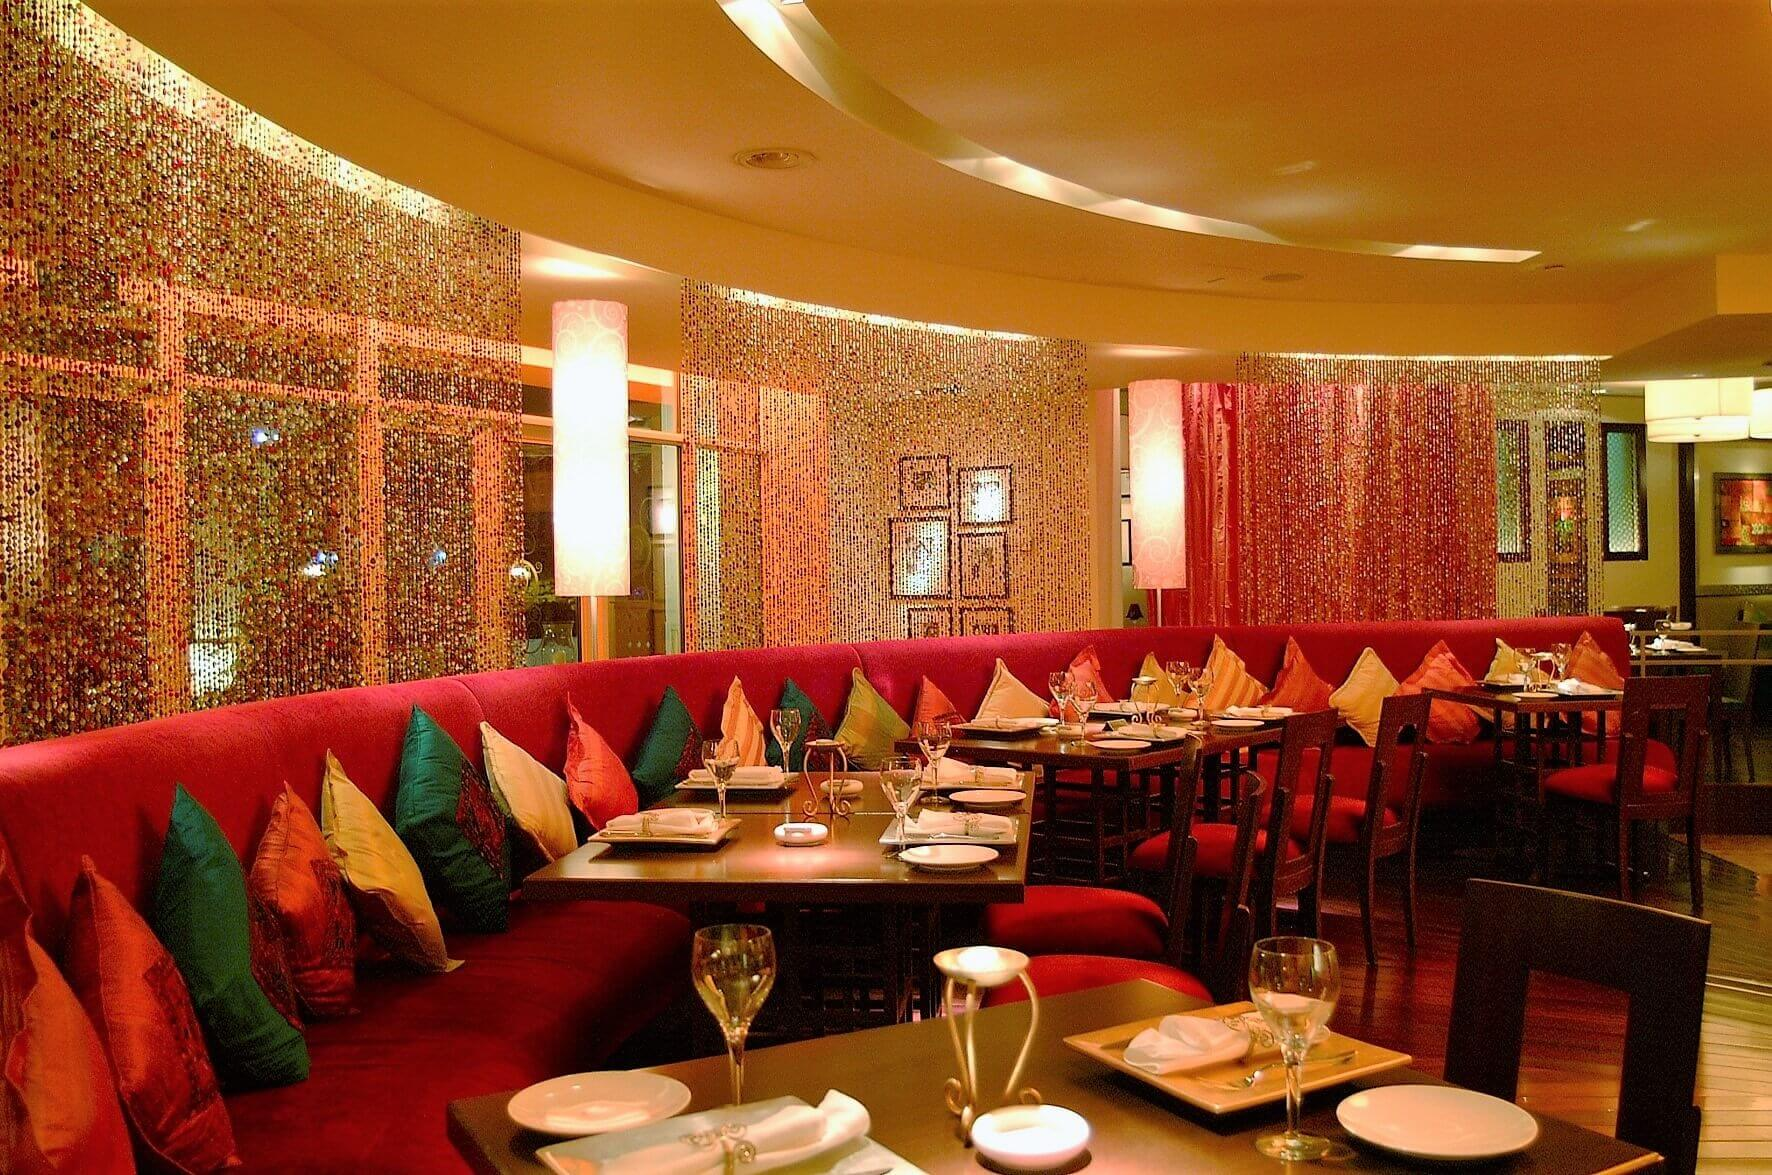 Indian restaurant interior designers uk psoriasisguru